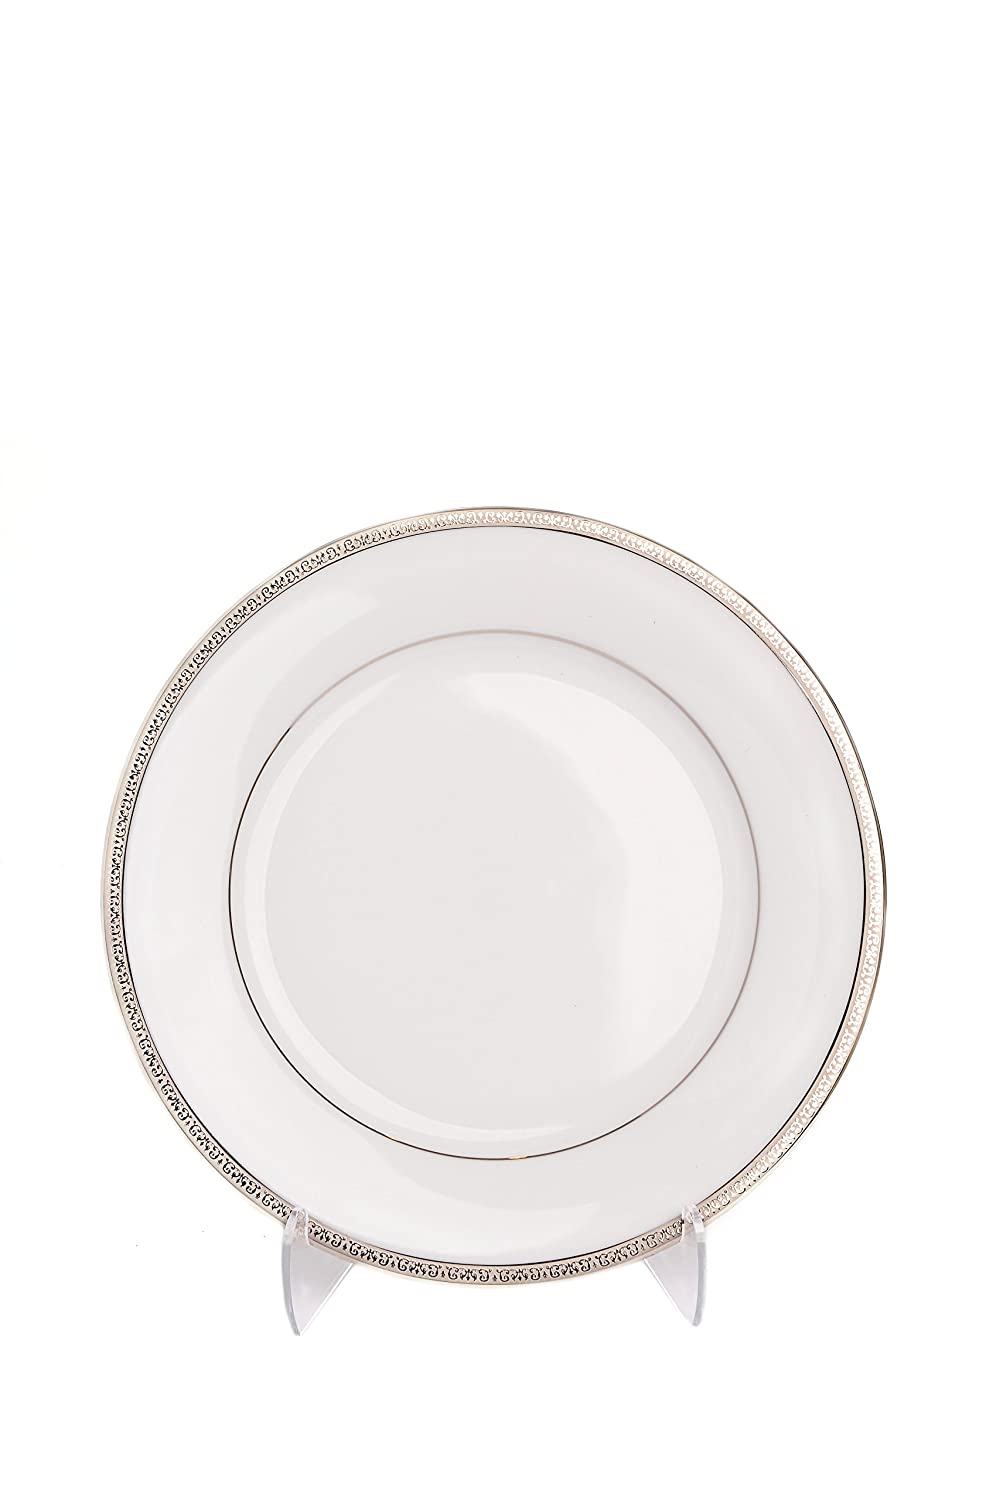 Very pity Asian style angle dinnerware deep colors